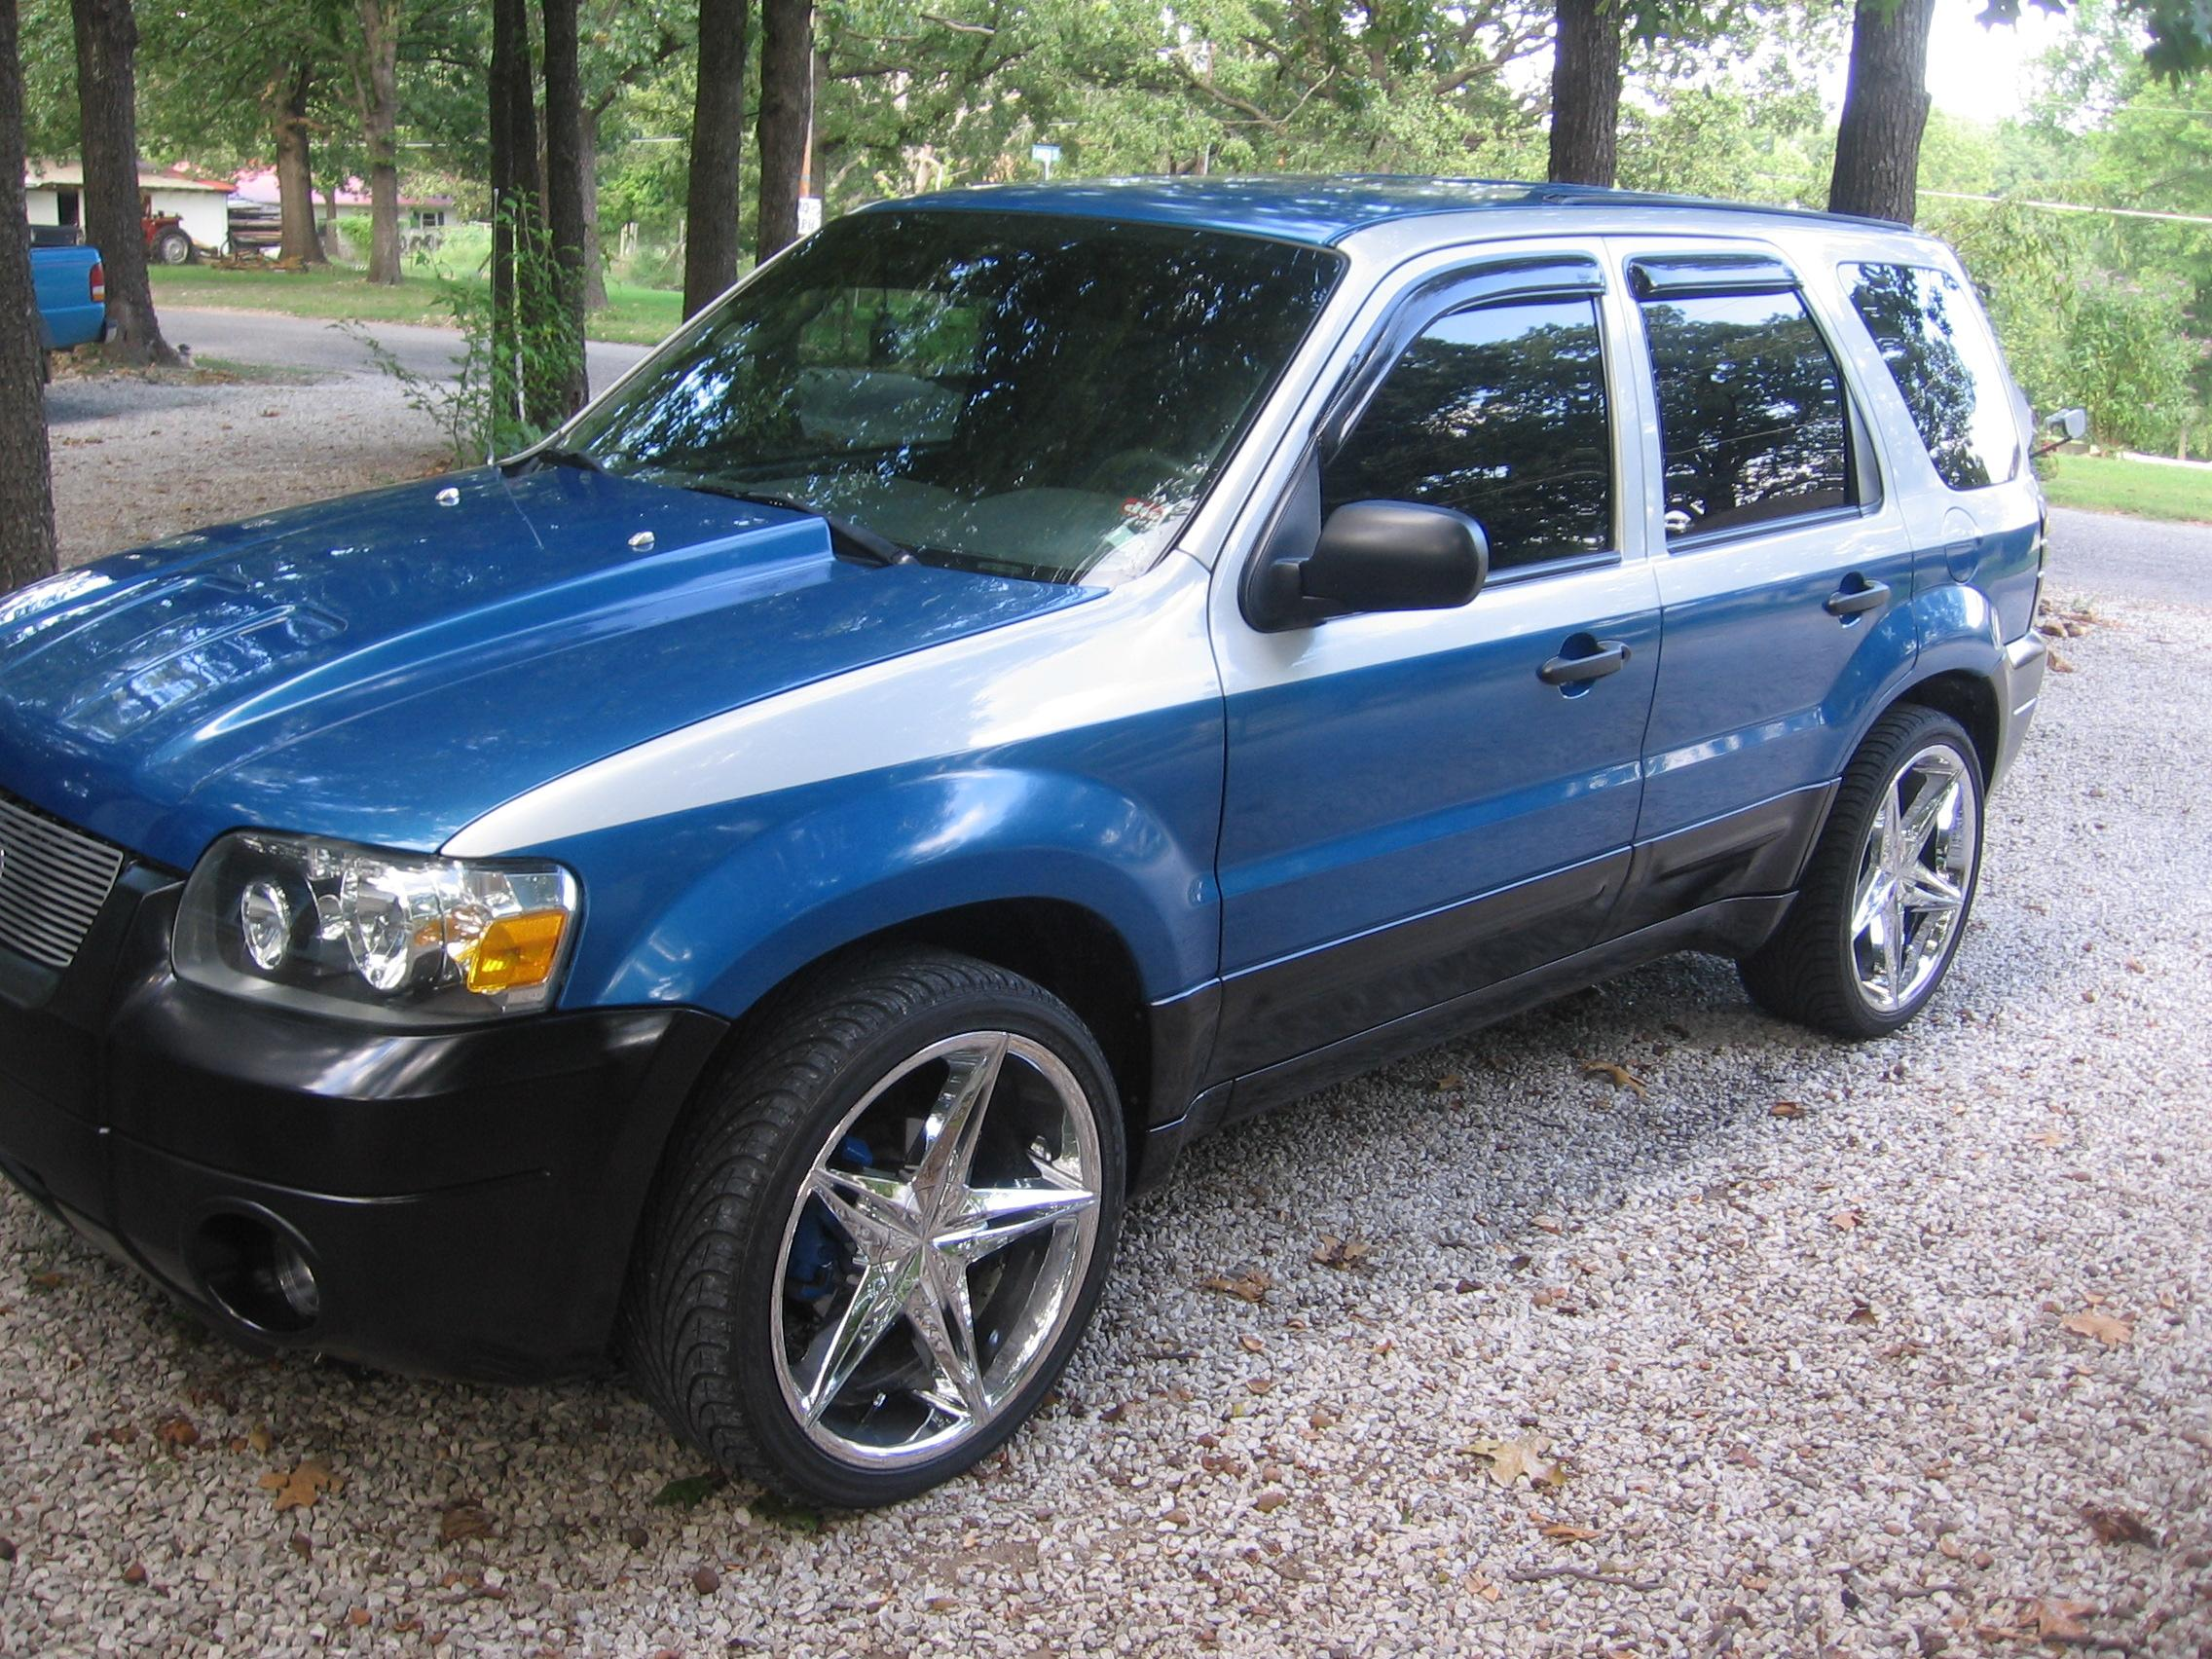 Ford Escape 2005 Tuning >> Customized Ford Escape Photos | Autos Post